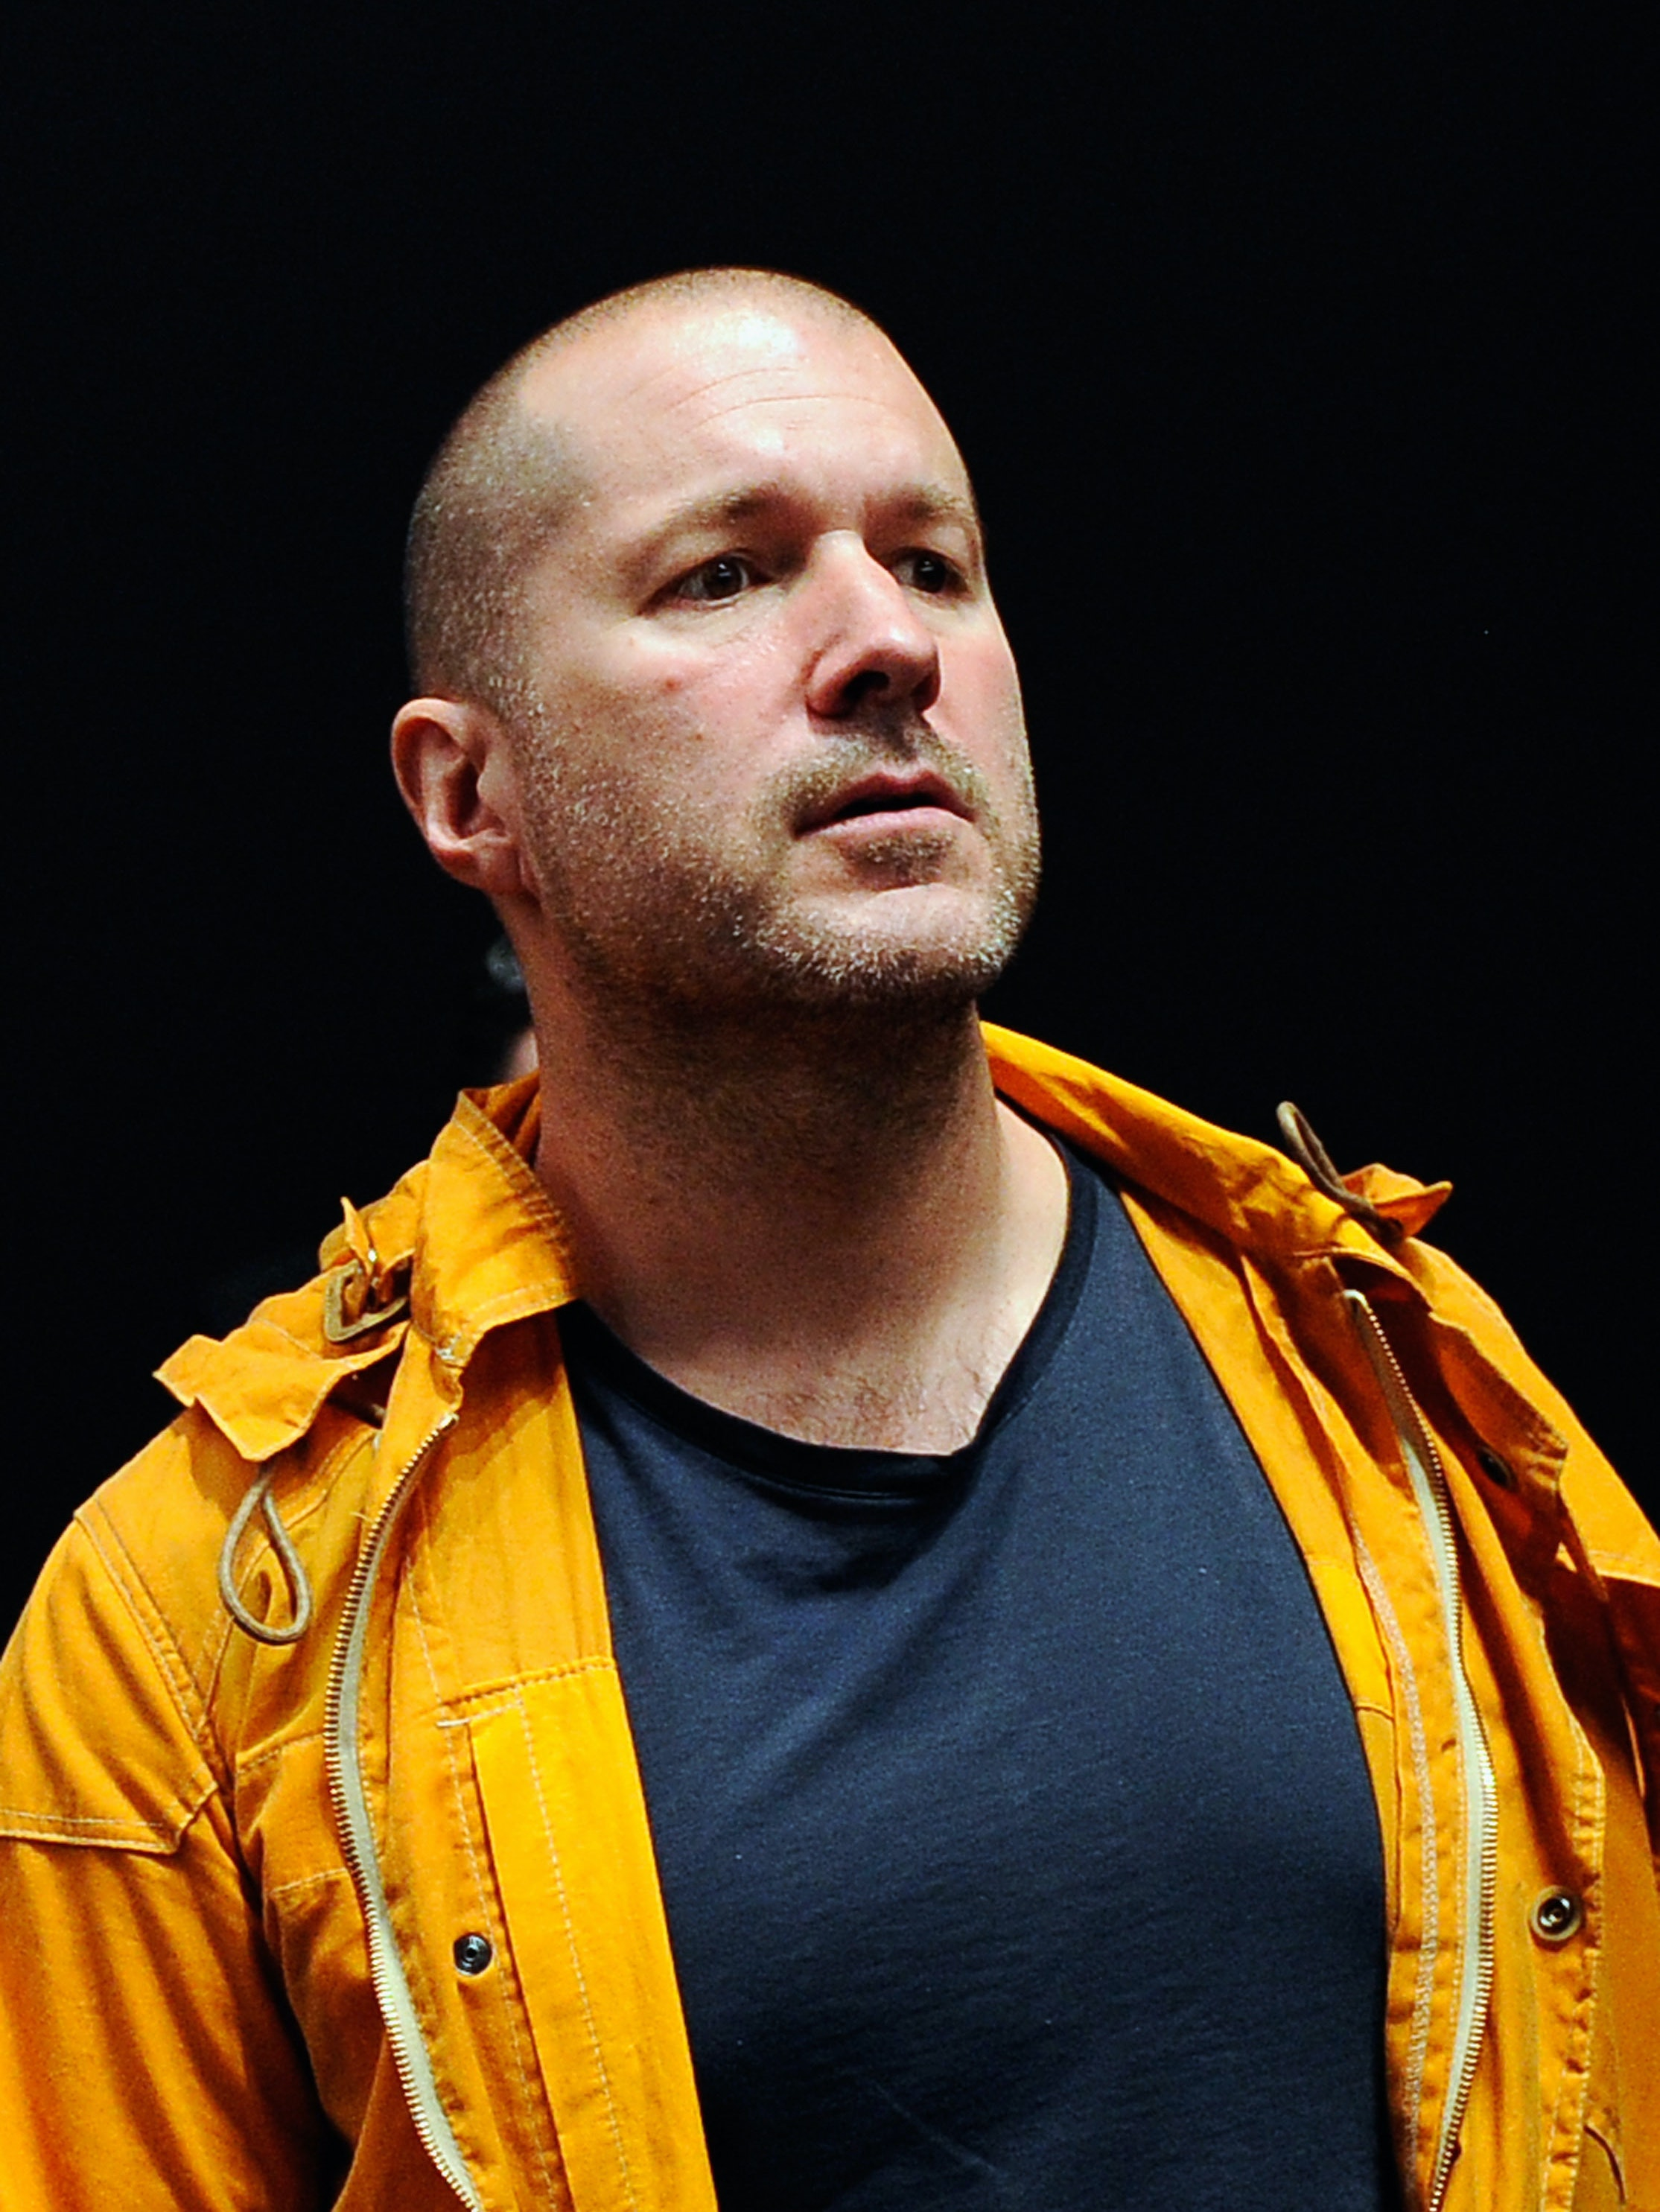 SAN FRANCISCO, CA - MARCH 07:  Senior vice president of industrial design for Apple Inc., Jonathan Ive, during an Apple product launch event at Yerba Buena Center for the Arts on March 7, 2012 in San Francisco, California. In the first product release following the death of Steve Jobs, Apple Inc. introduced the third version of the iPad and an updated Apple TV.  (Photo by Kevork Djansezian/Getty Images)